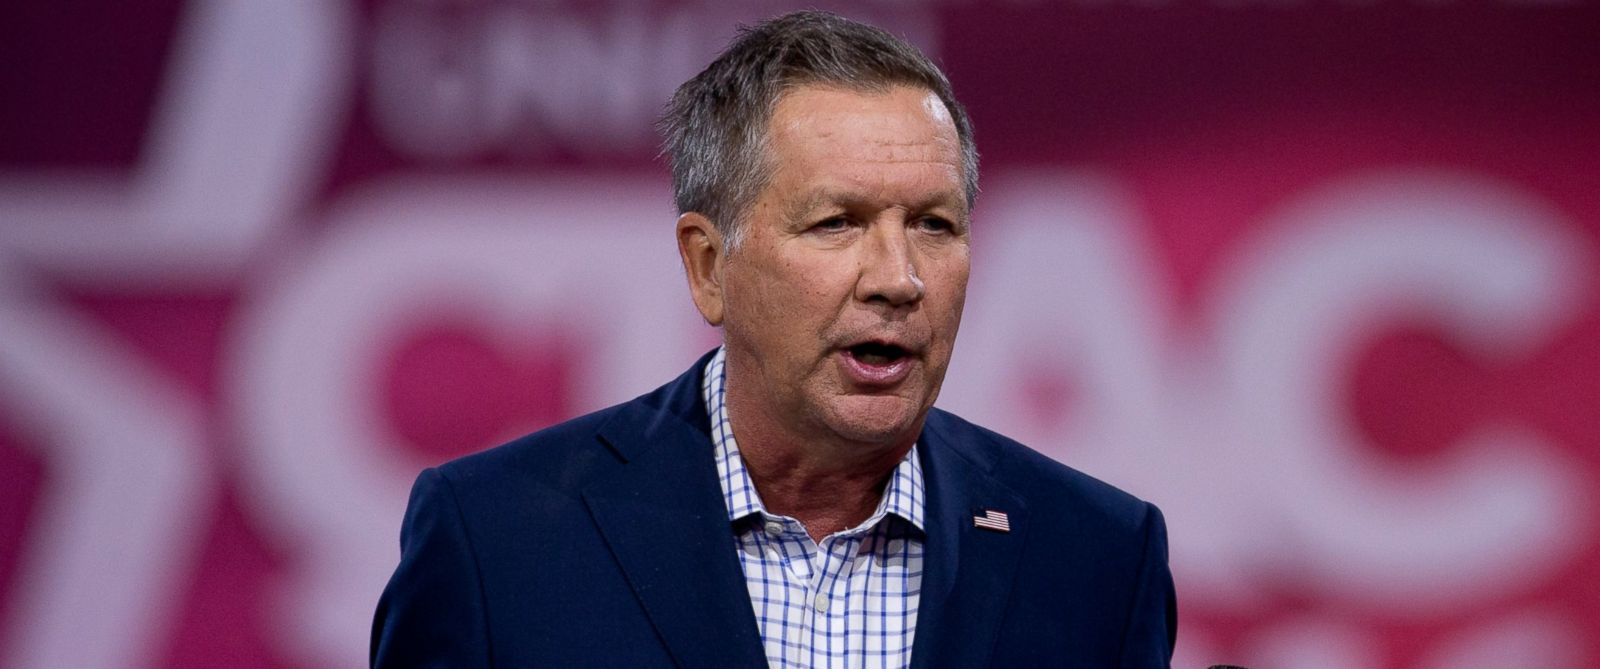 PHOTO: Republican presidential candidate, Ohio Gov. John Kasich speaks during the Conservative Political Action Conference (CPAC), March 4, 2016, in National Harbor, Md.